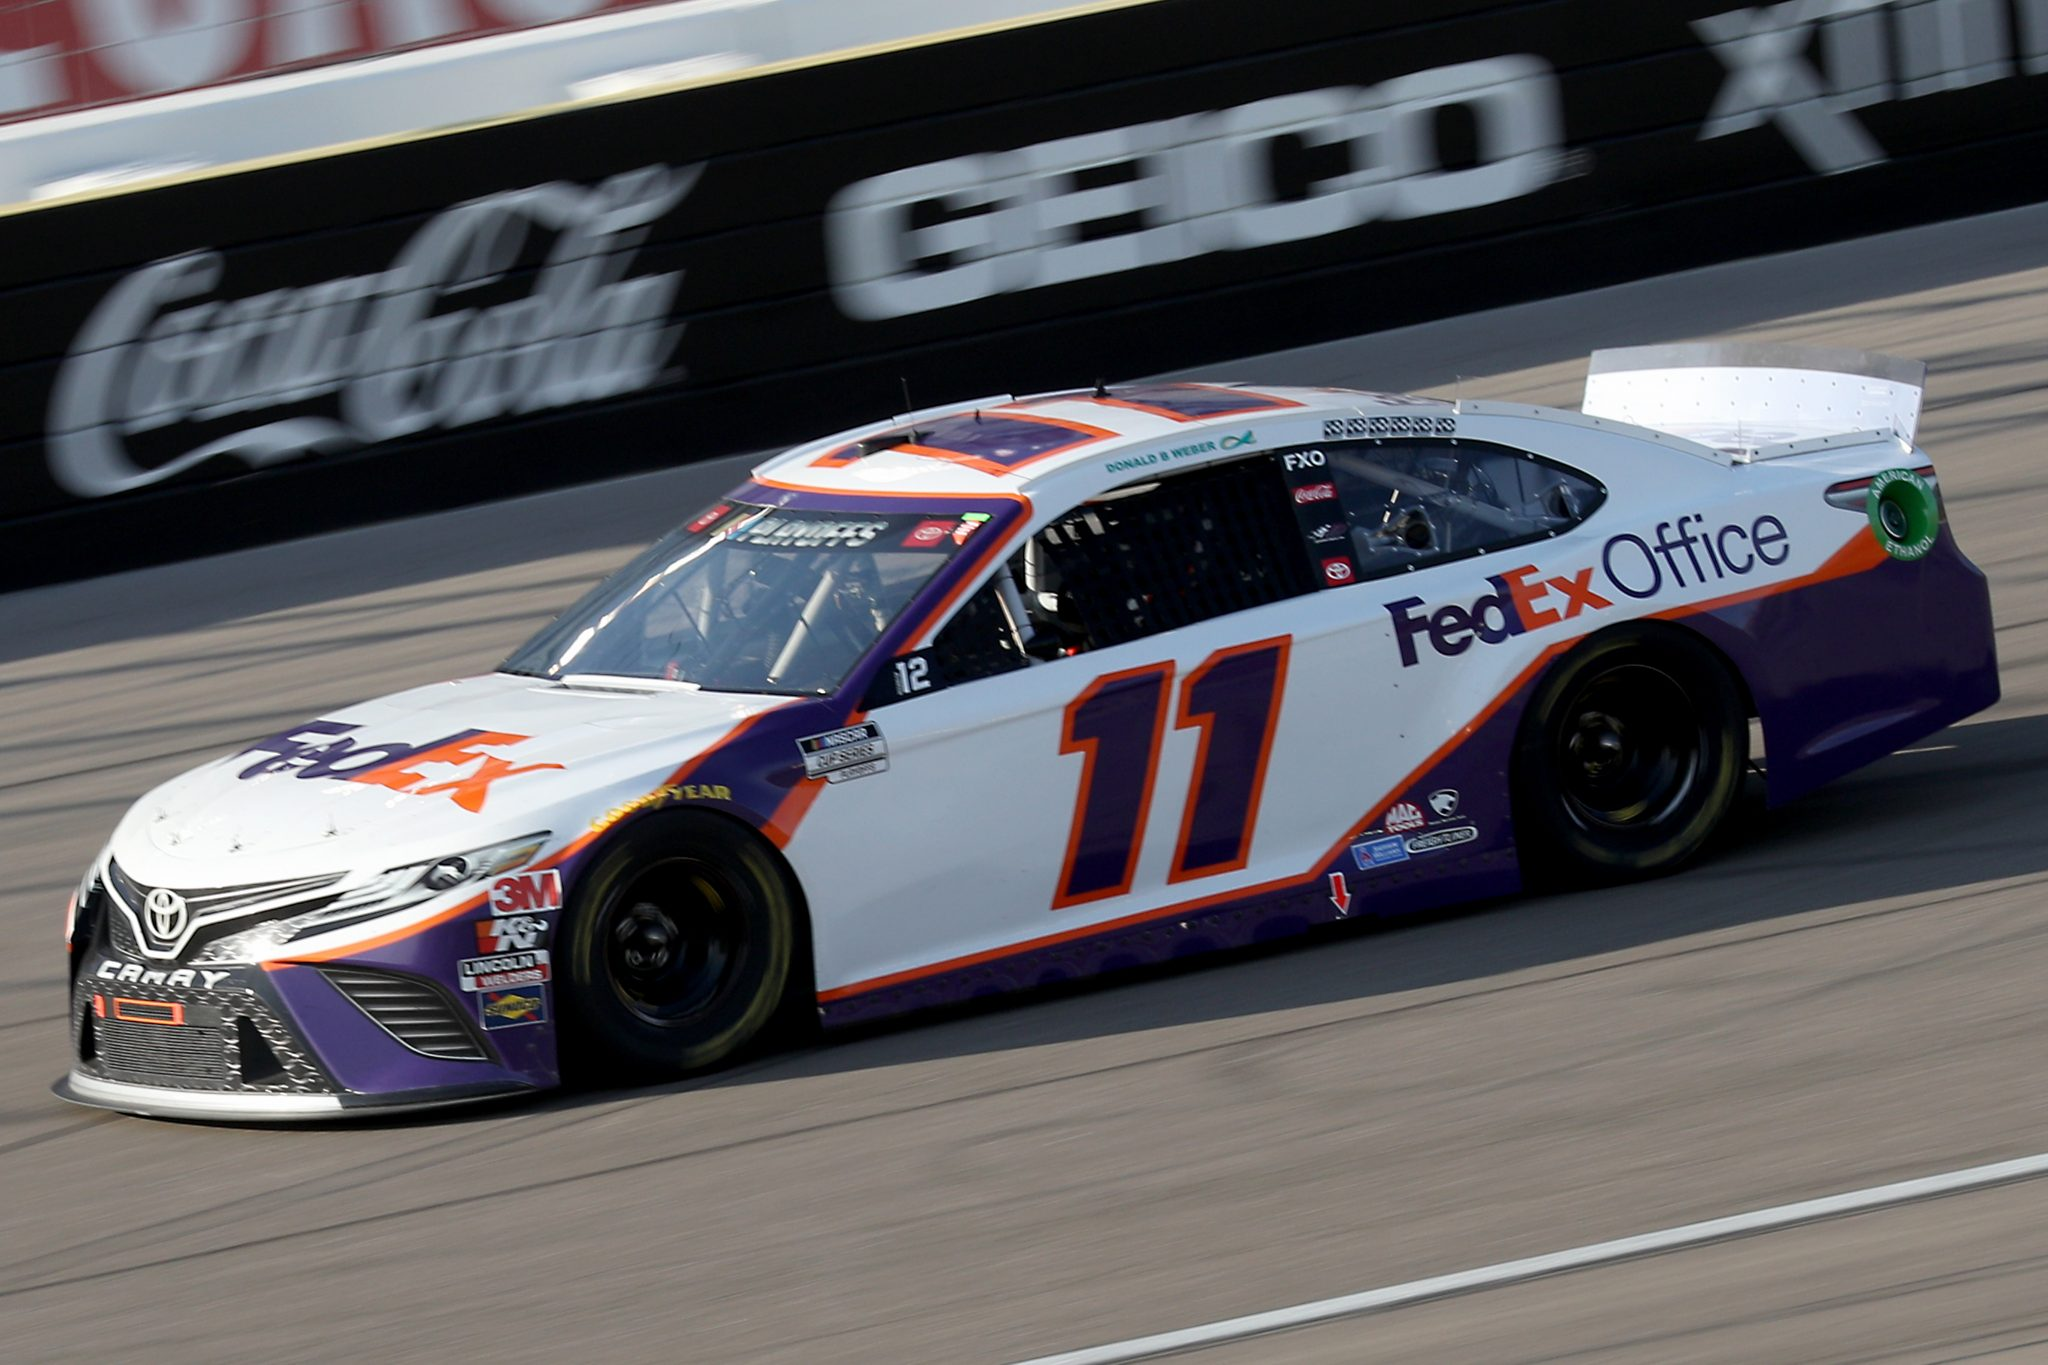 LAS VEGAS, NEVADA - SEPTEMBER 27: Denny Hamlin, driver of the #11 FedEx Office Toyota, drives during the NASCAR Cup Series South Point 400 at Las Vegas Motor Speedway on September 27, 2020 in Las Vegas, Nevada. (Photo by Chris Graythen/Getty Images) | Getty Images